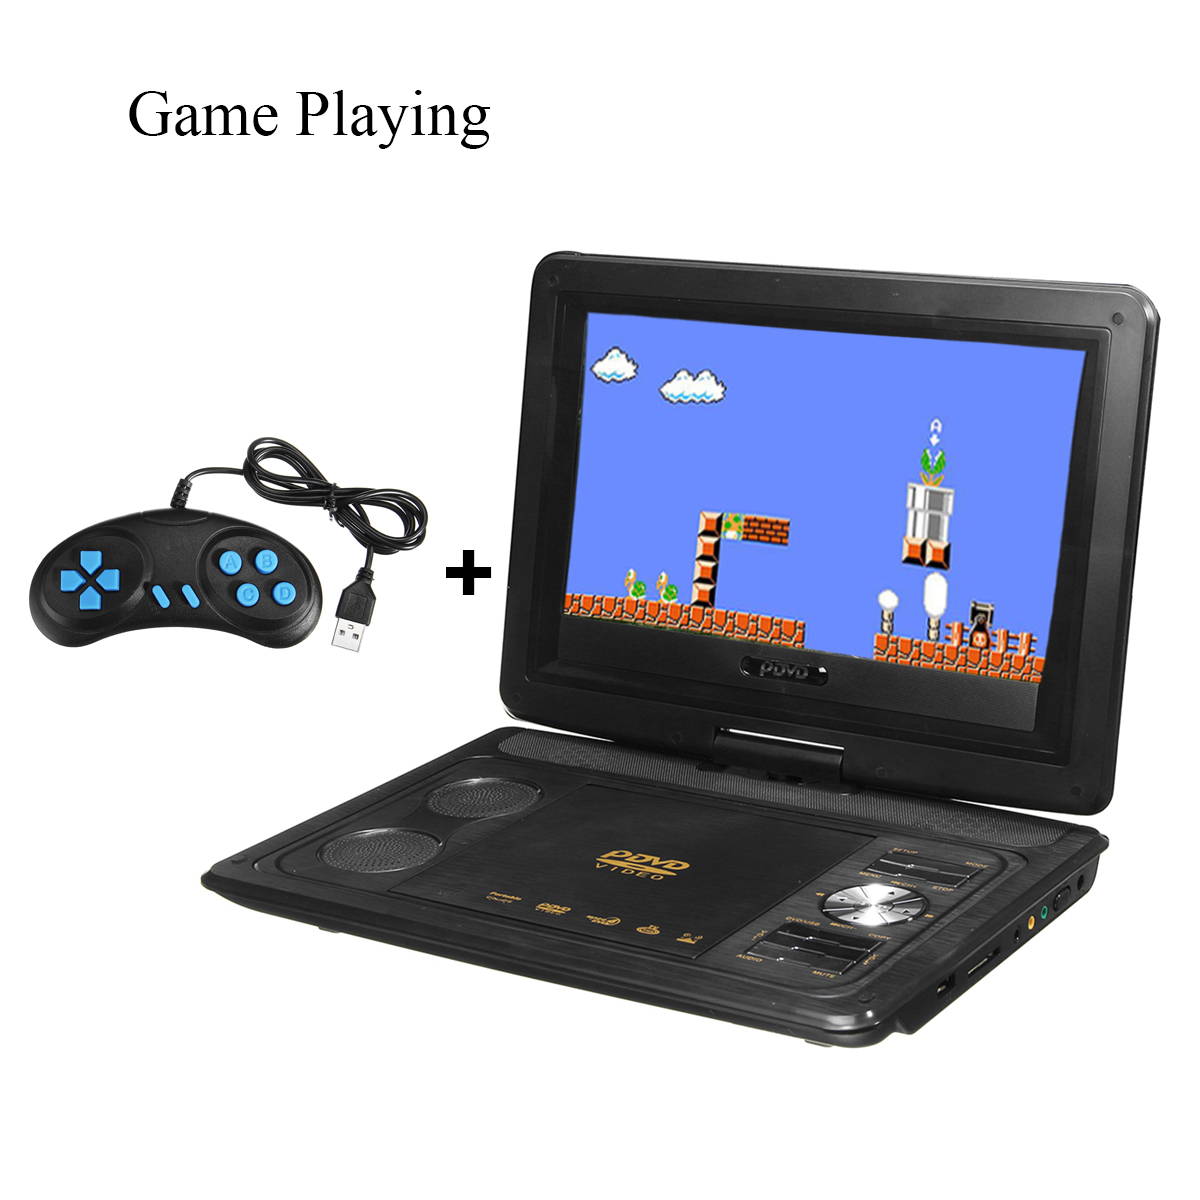 13.8 Inch Portable 180 Degree Rotation Rechargeable DVD Player with Gamepad